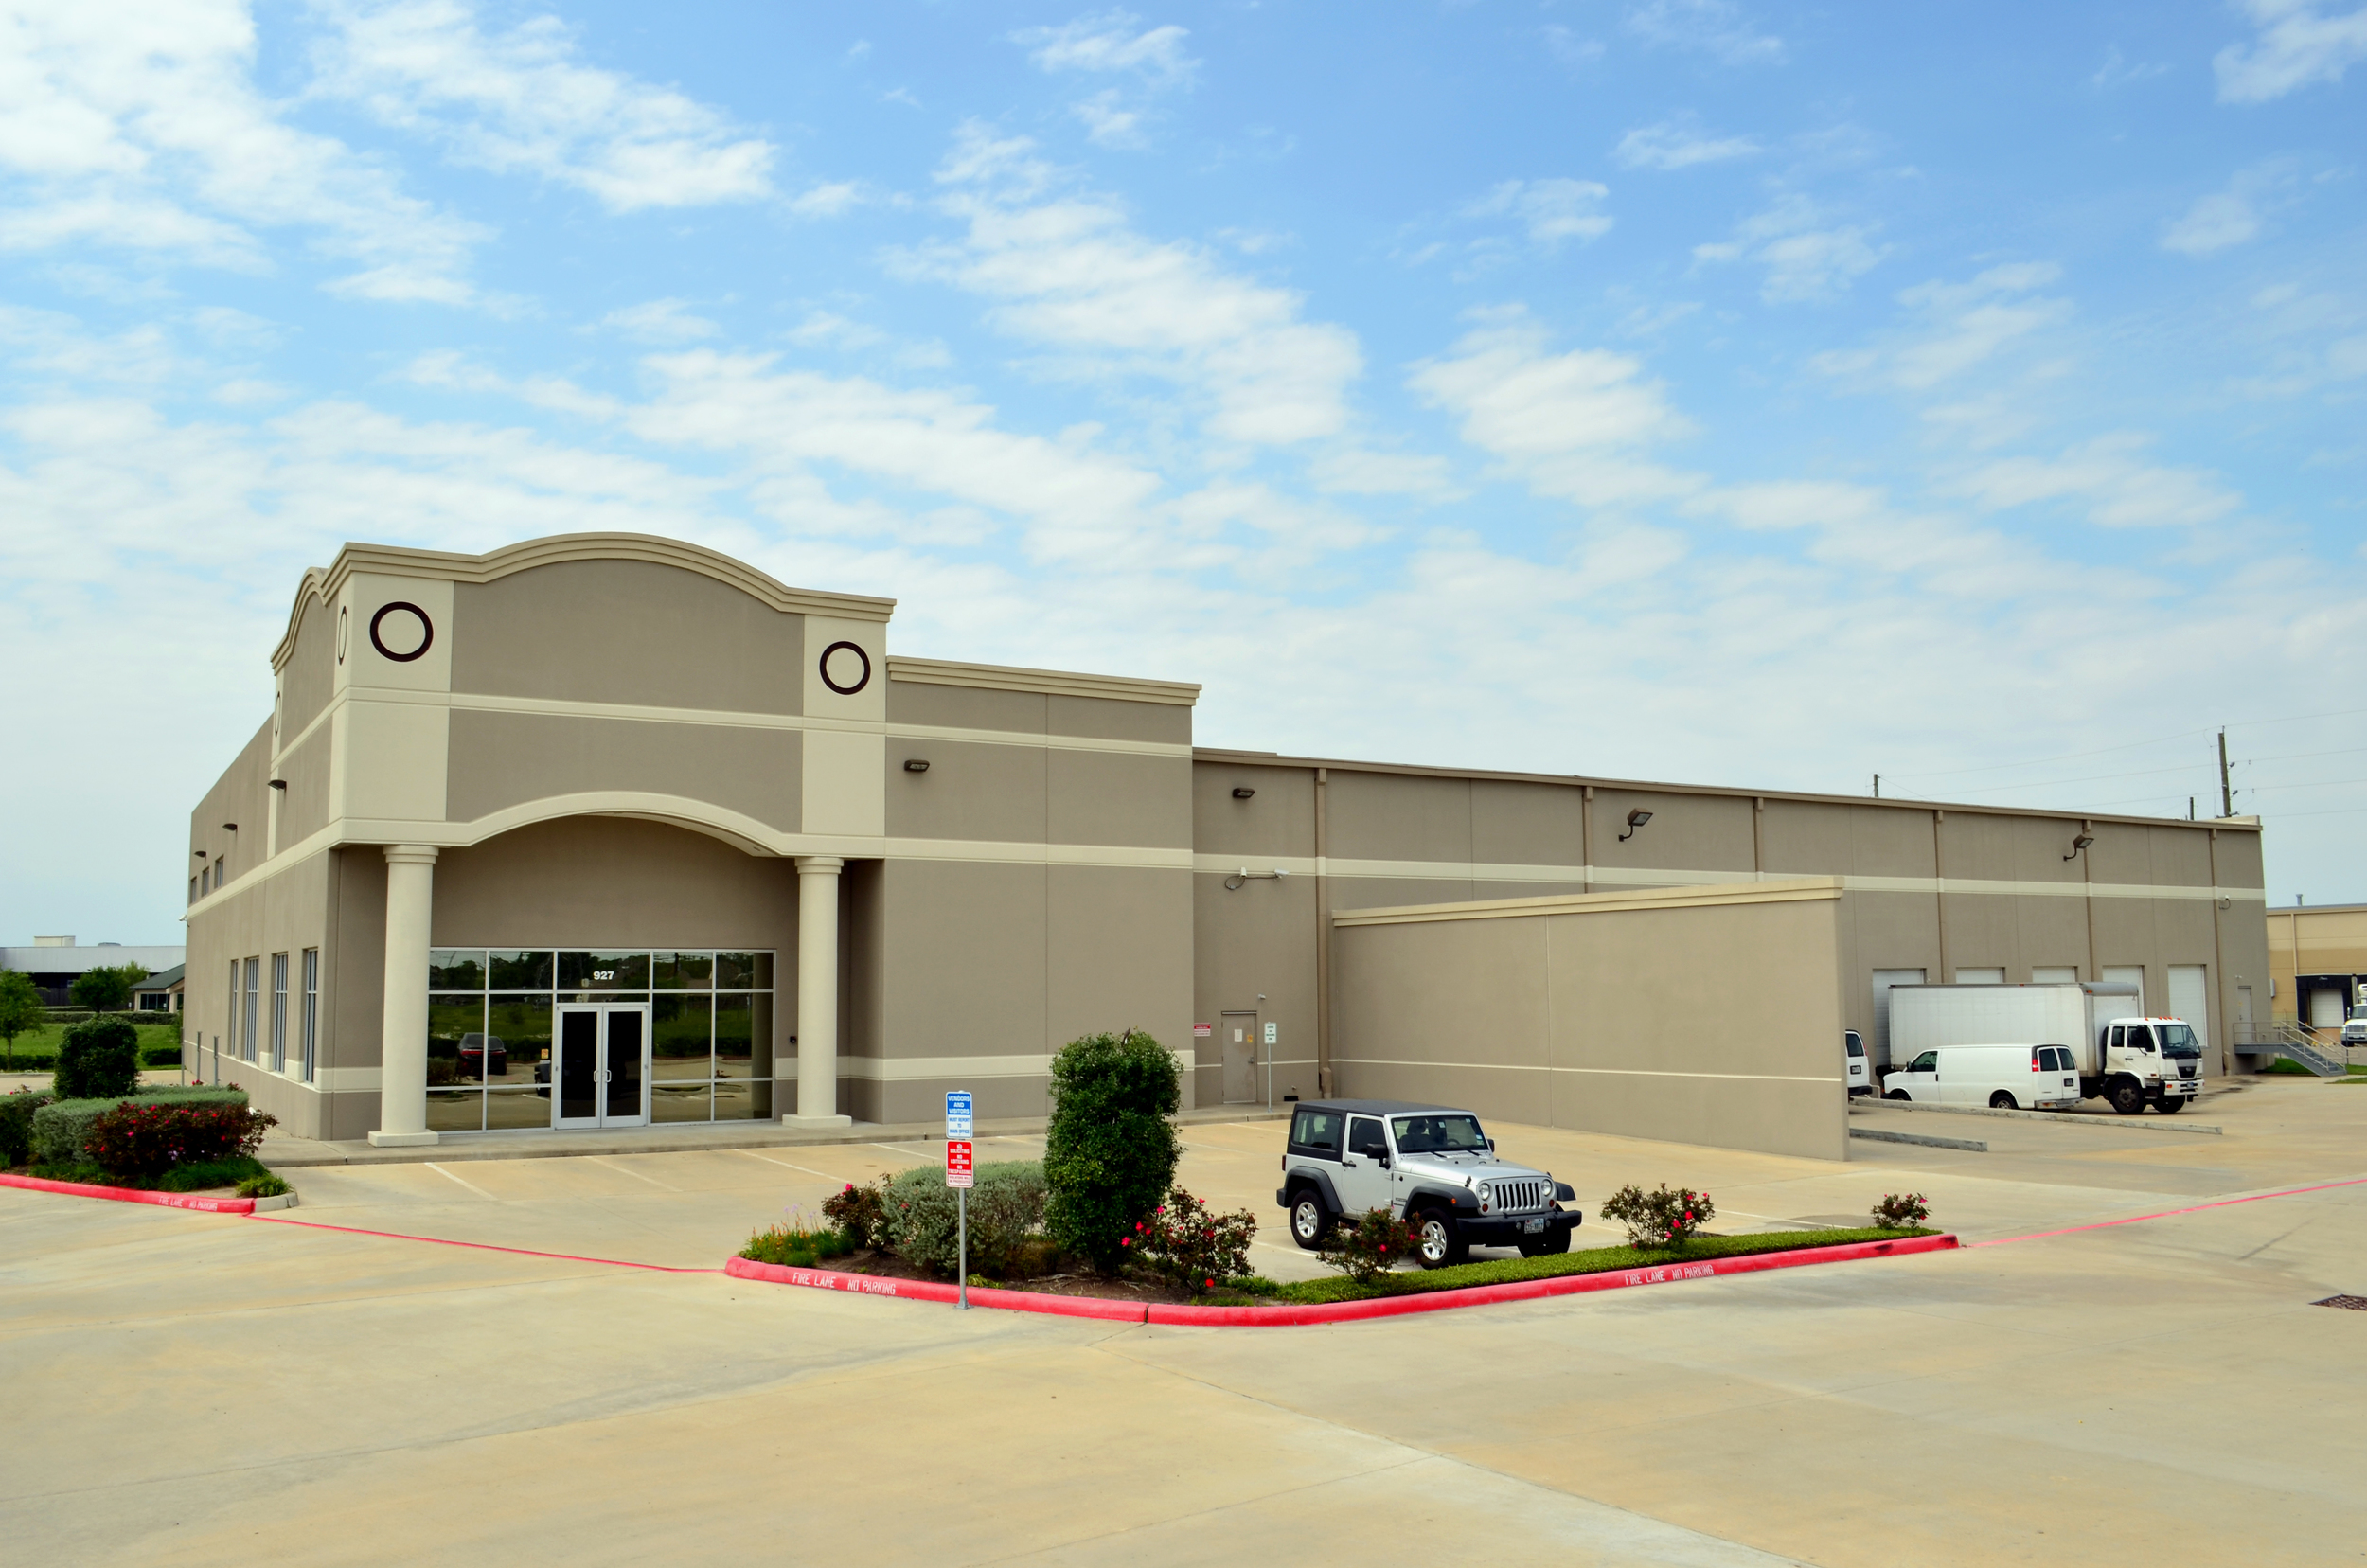 Sunrise Natural Foods. Project designed and managed by Oscar Valdez working at Haynes Whaley Associates